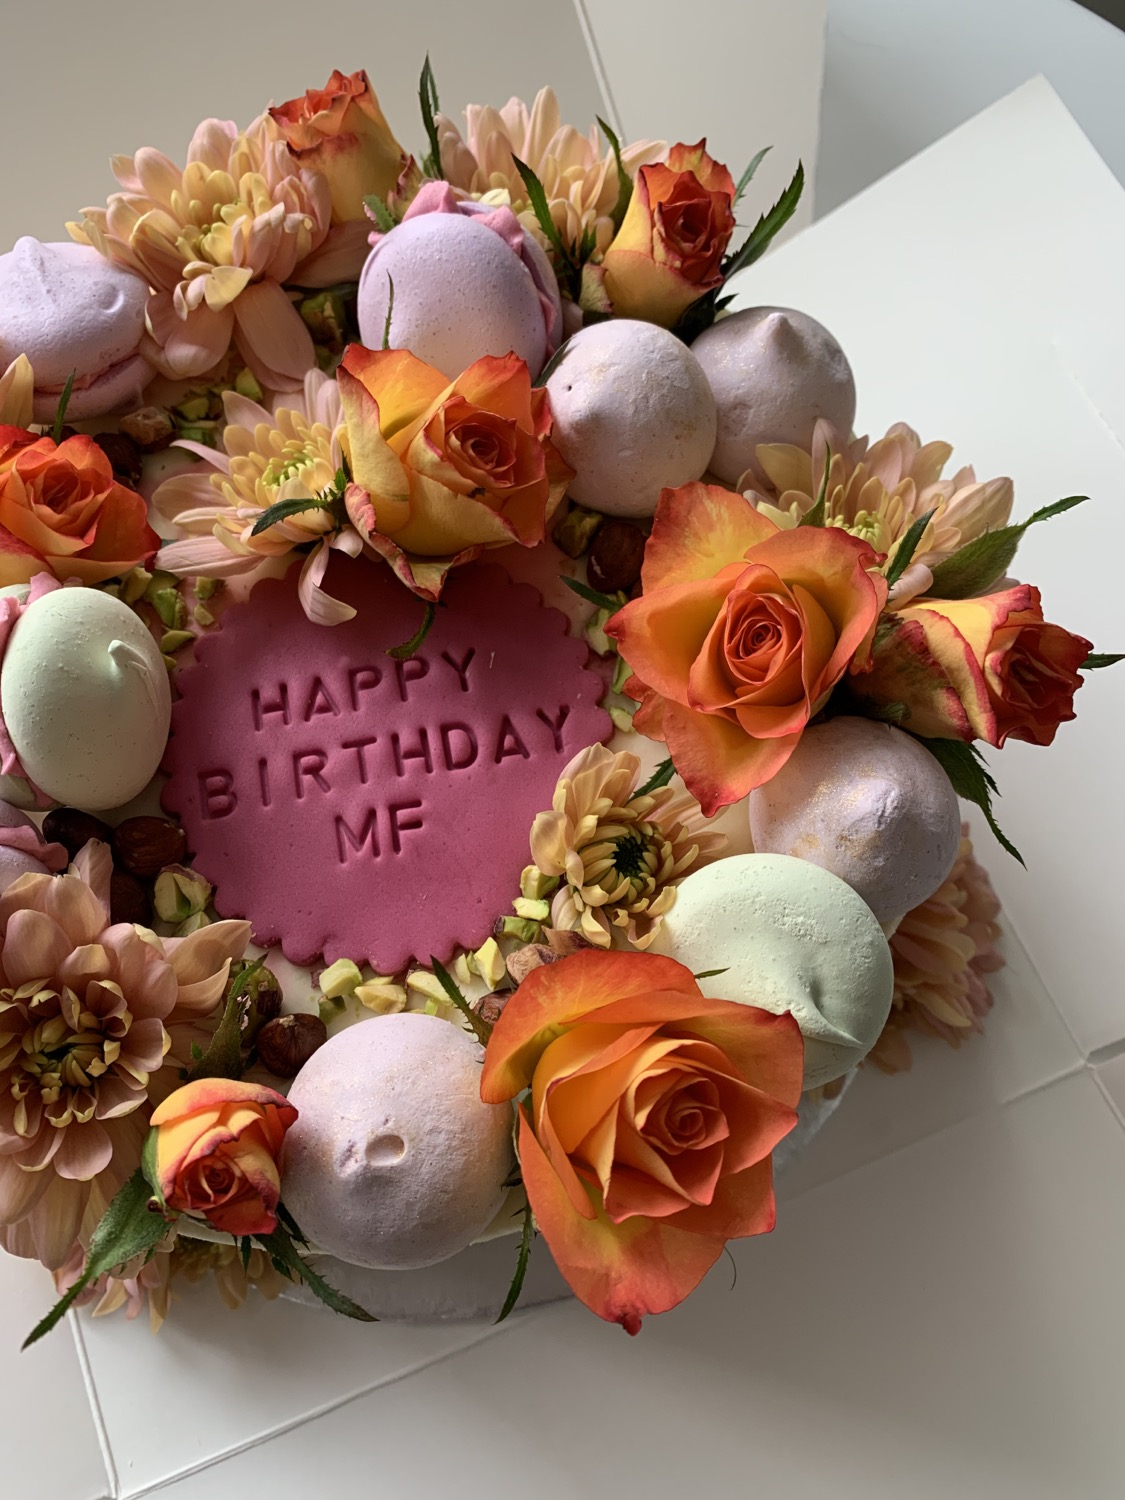 Birthday Cake with flowers, macaroon